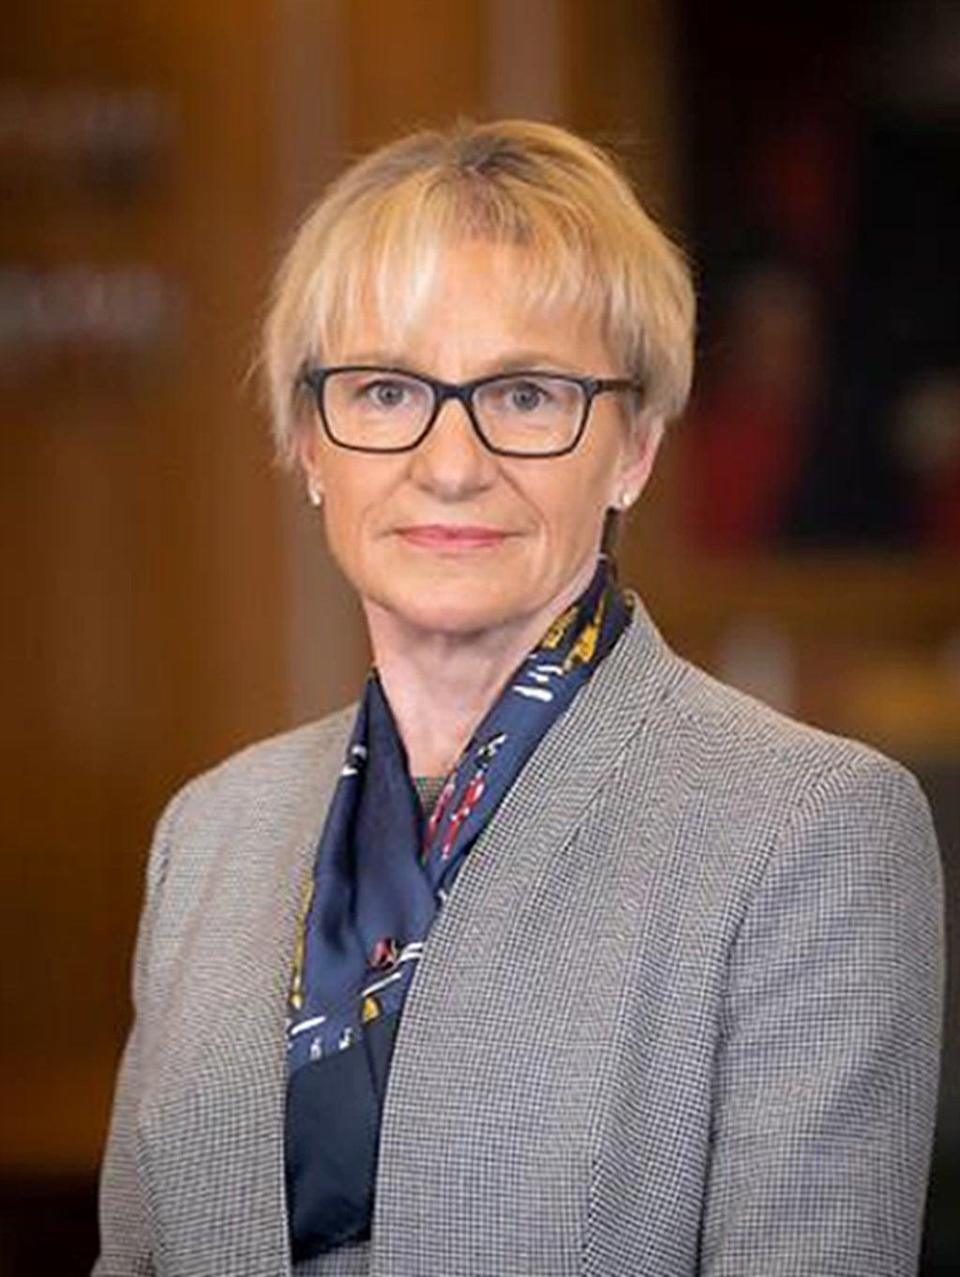 Coroner Sarah Munro QC warned jurors to focus on the evidence in court (Philip McCarthy Photography/HM Coroner) (PA Media)